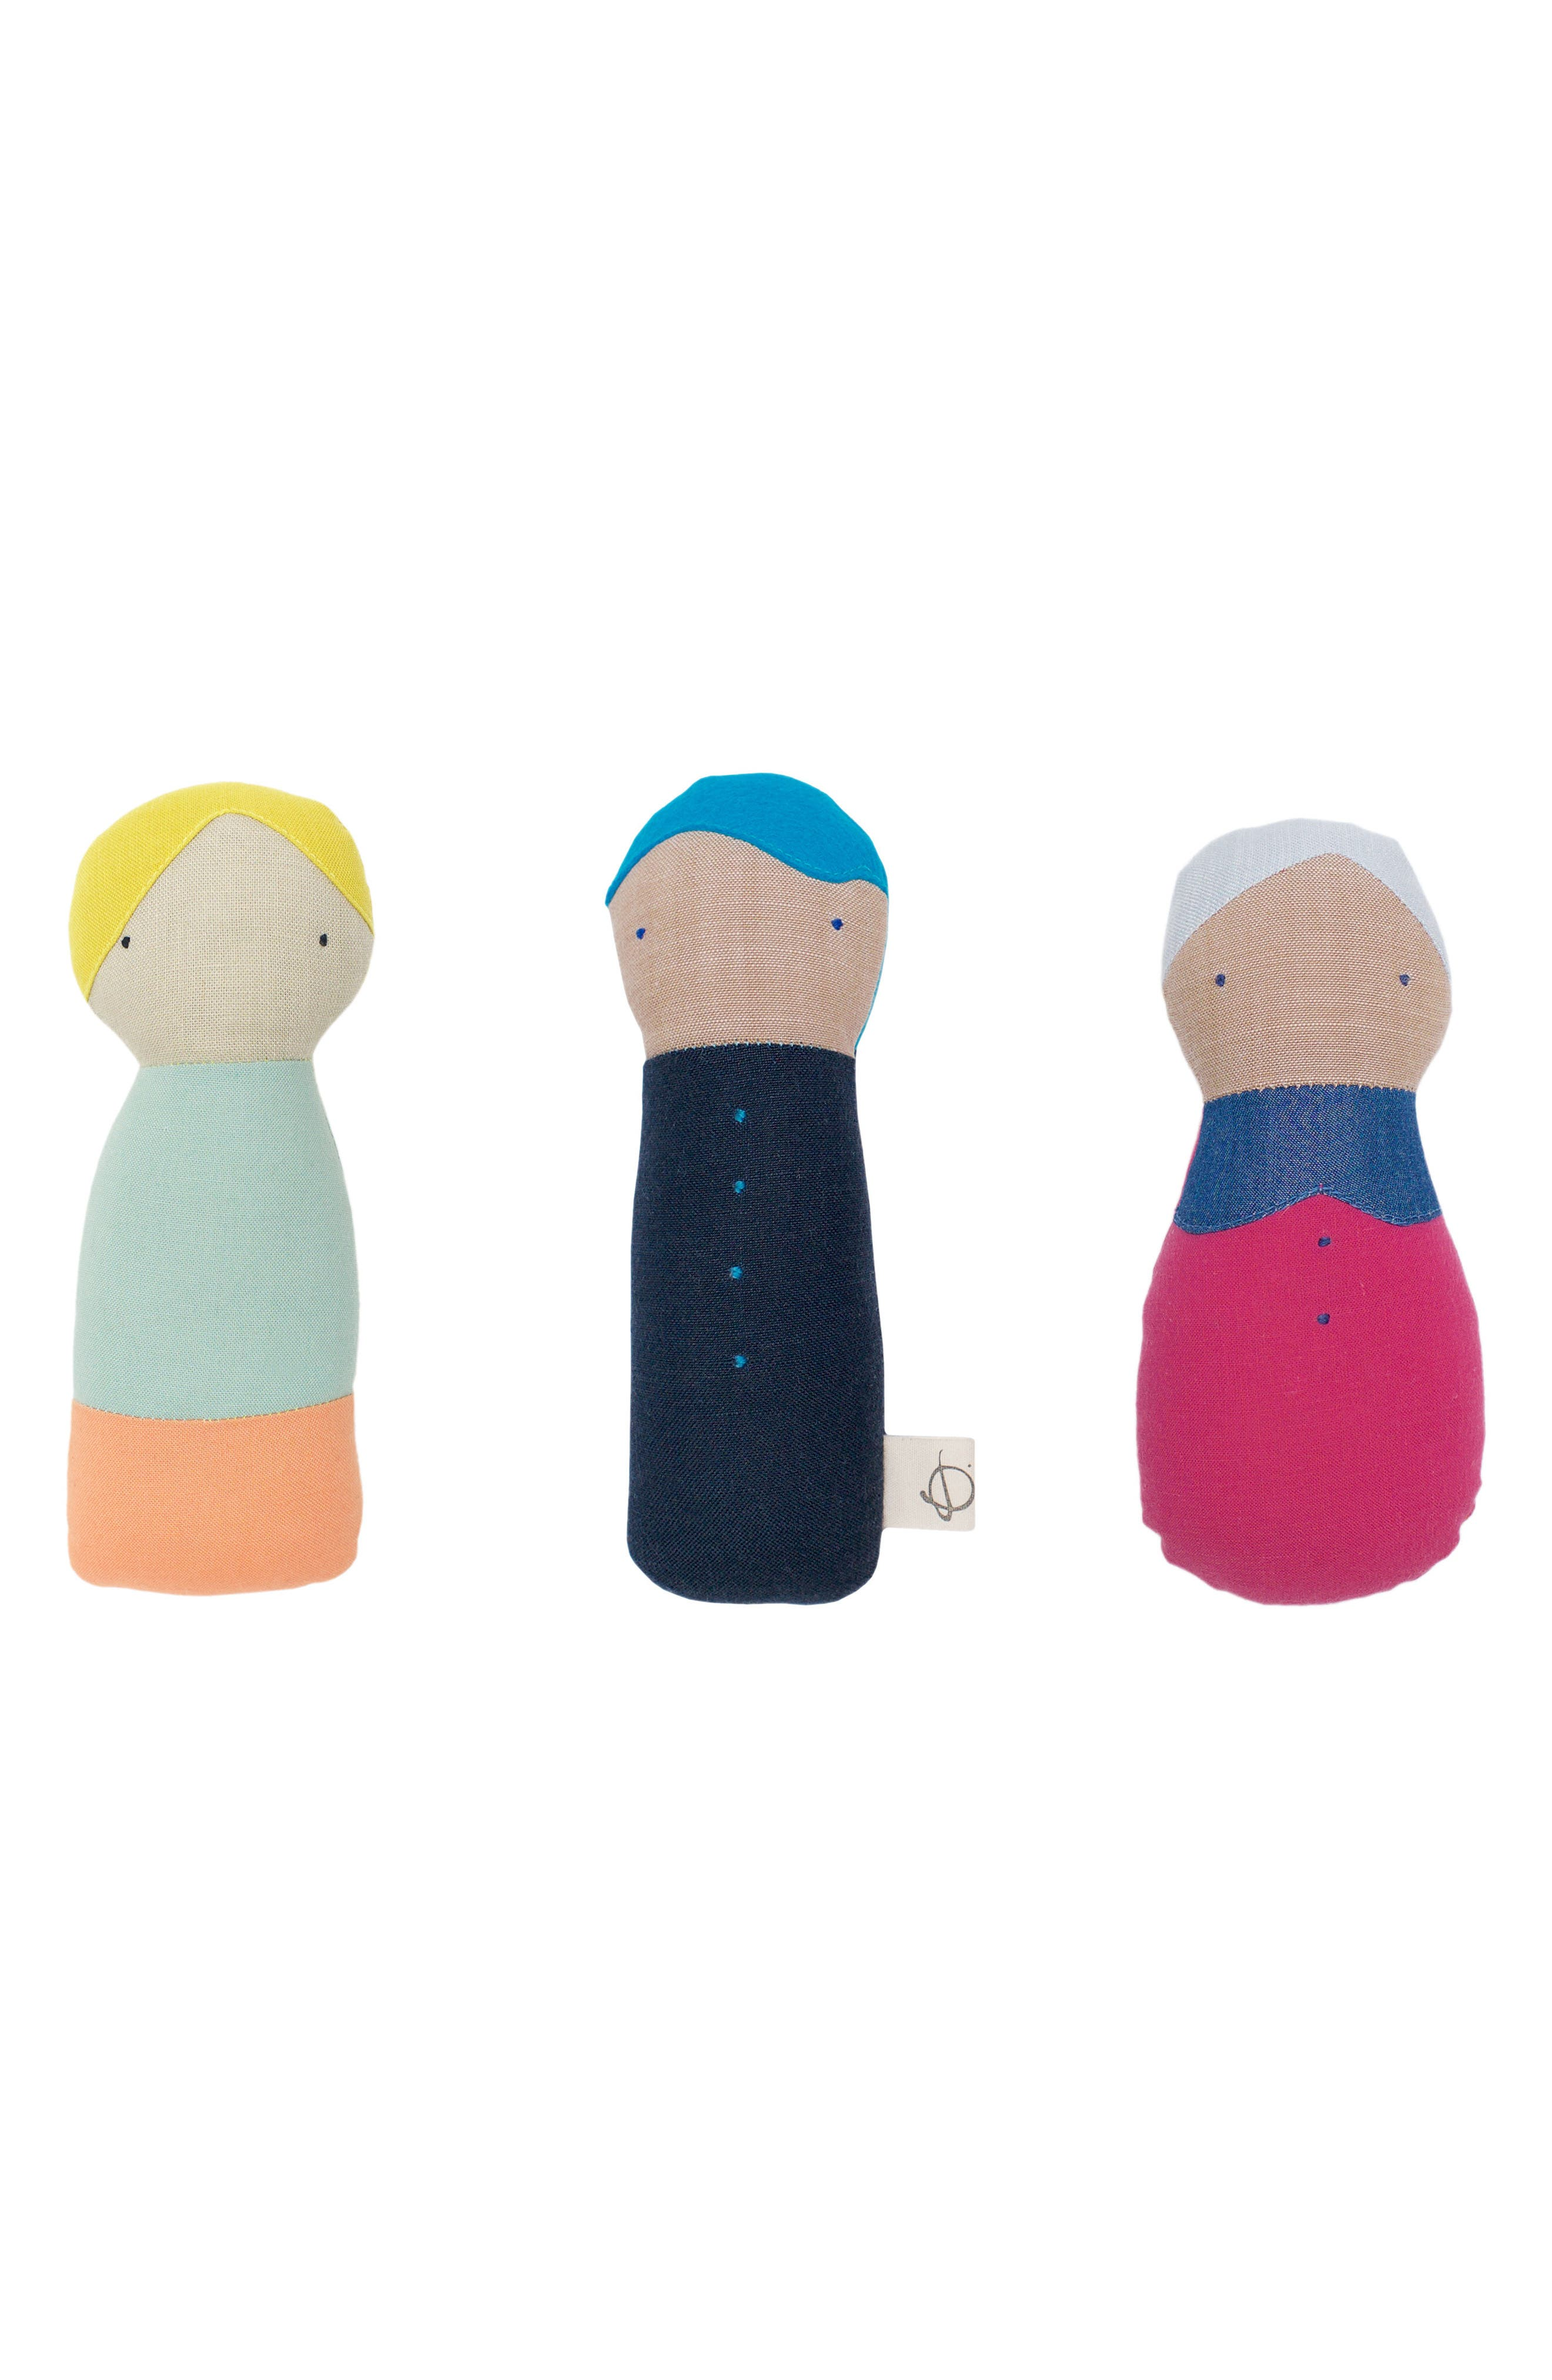 ouistitine x Pehr Little Peeps Rattle,                             Alternate thumbnail 5, color,